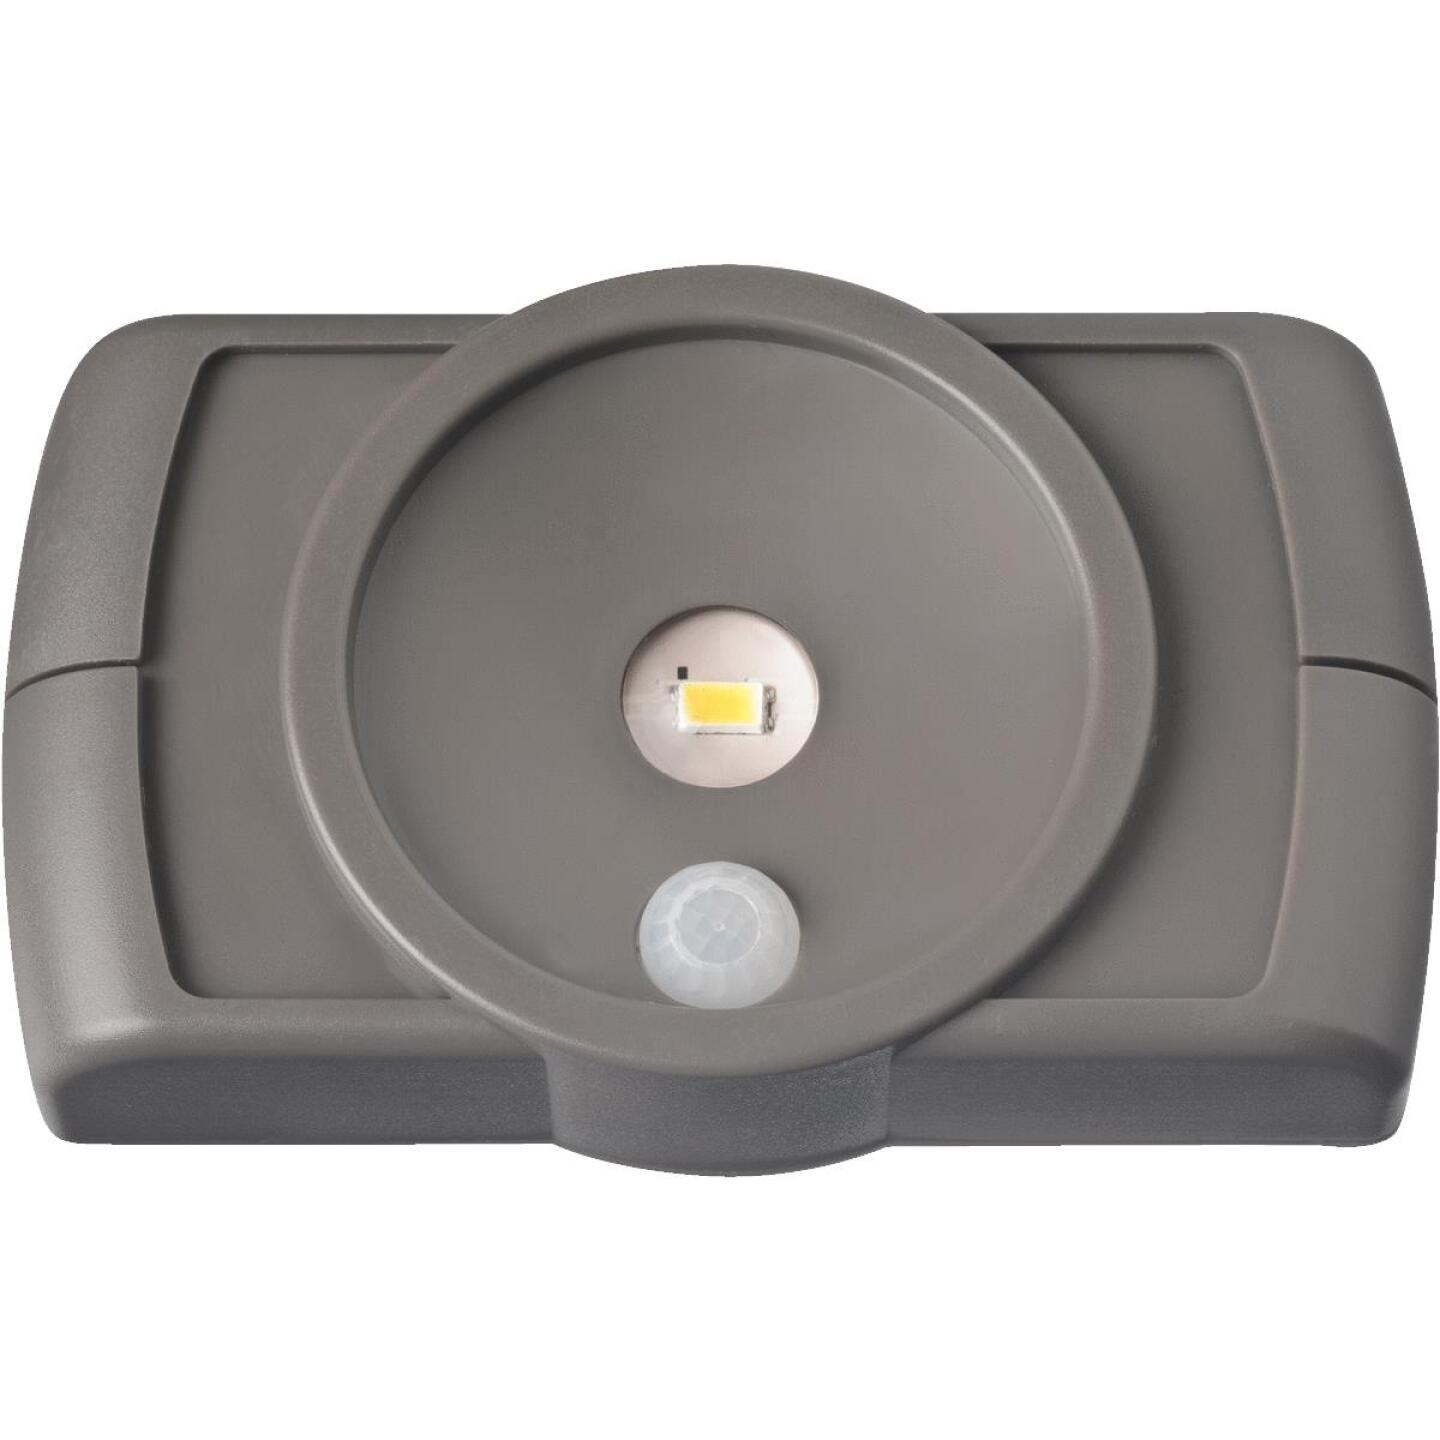 Mr. Beams Brown LED Battery Operated Light Image 3